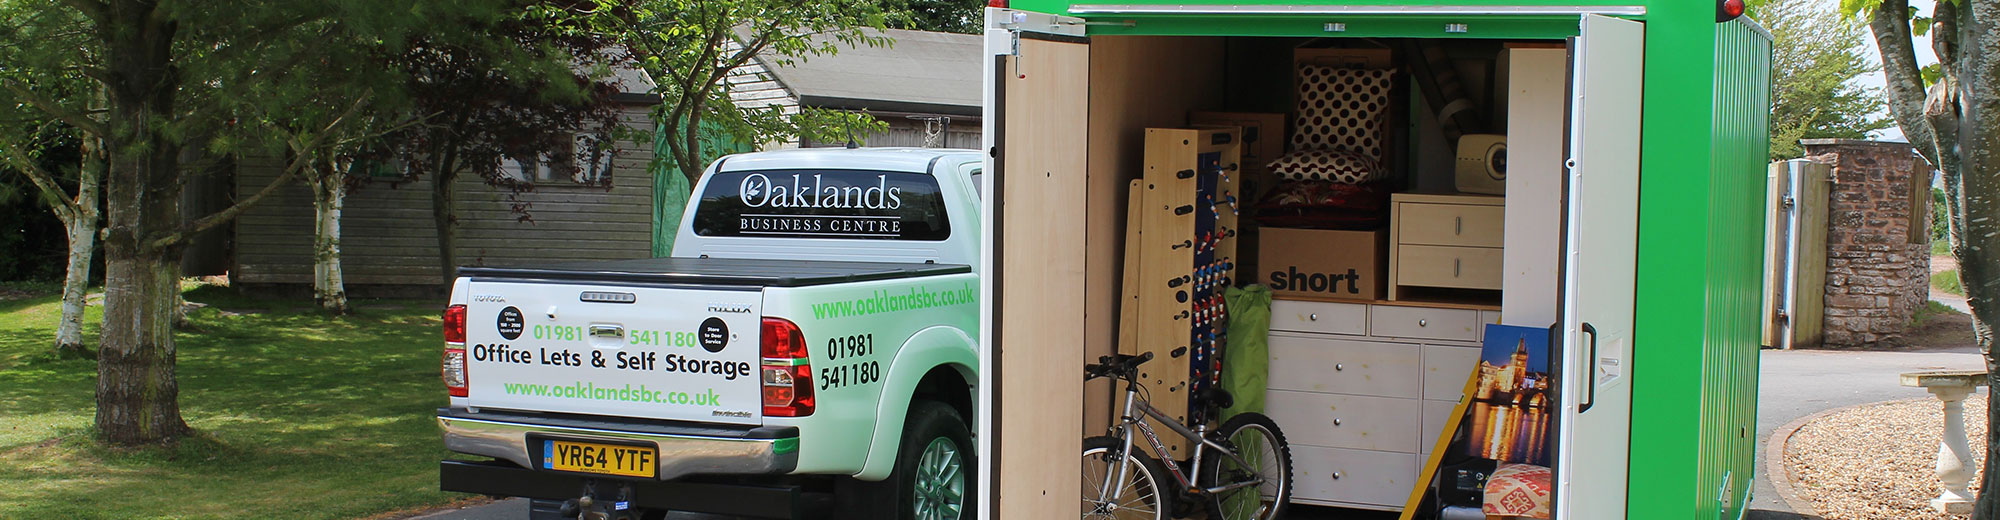 Self Storage in Lydney, Cinderford, Ross-On-Wye and Monmouth